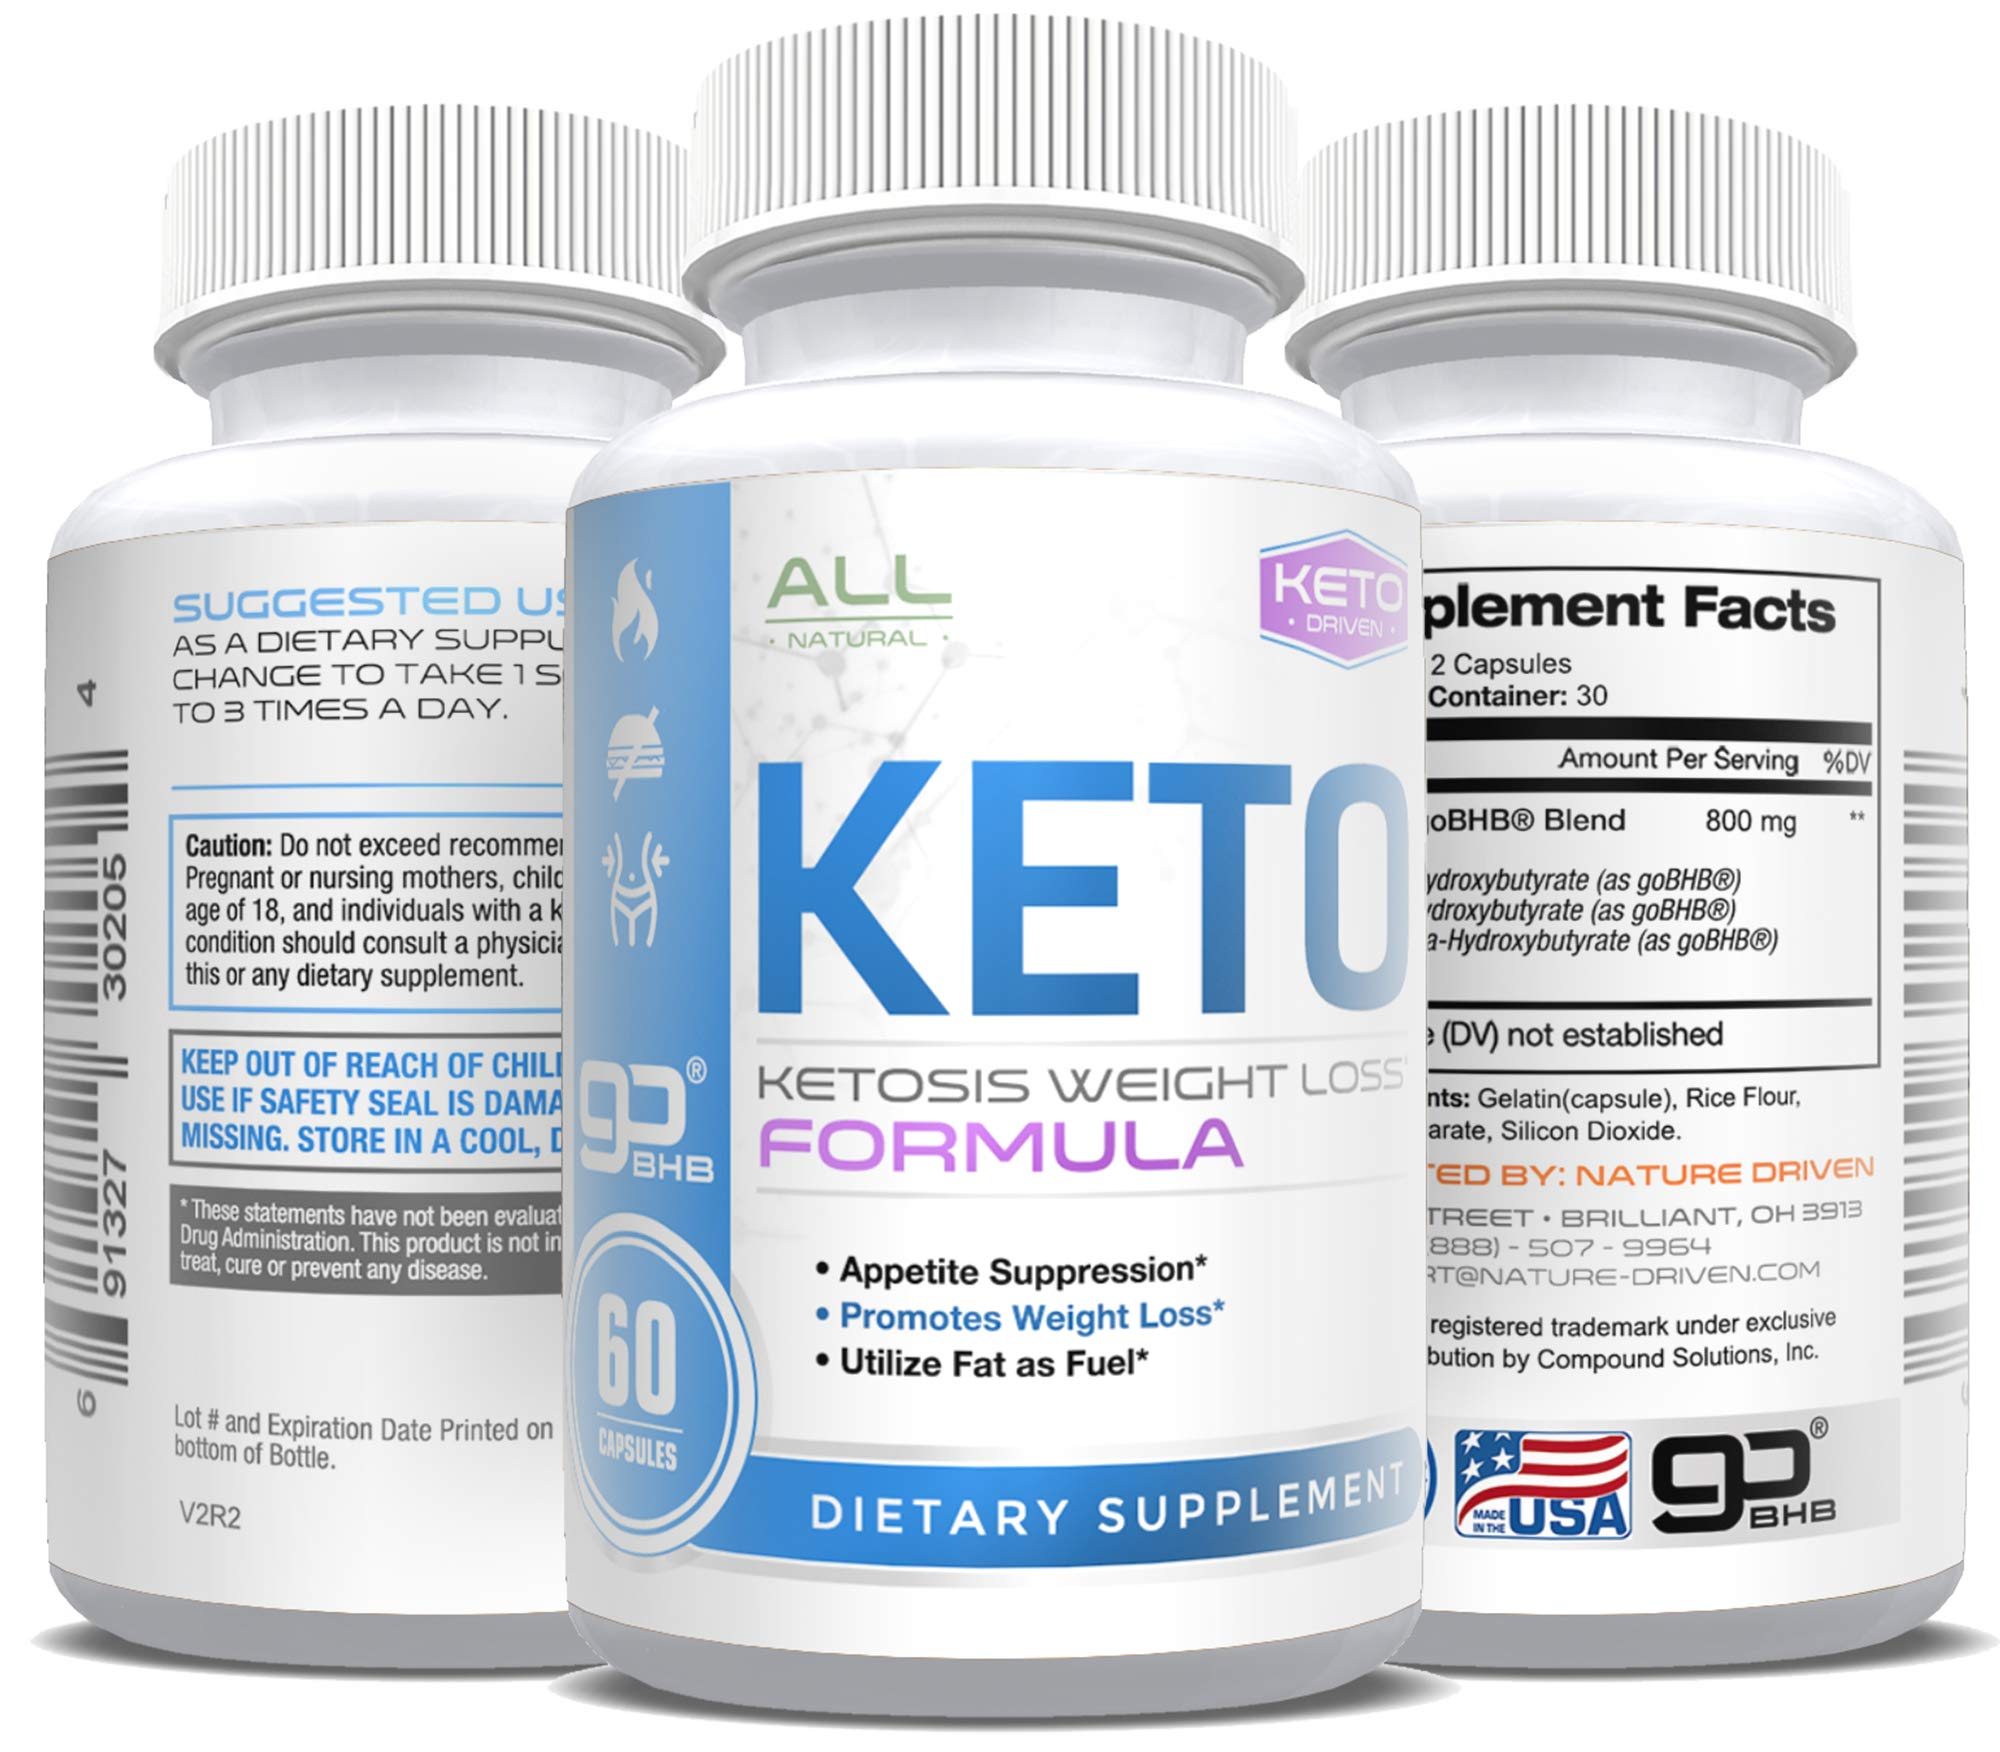 Amazon.com: Keto Pills from Shark Tank - Weight Loss Supplements to Burn Fat Fast - Boost Energy